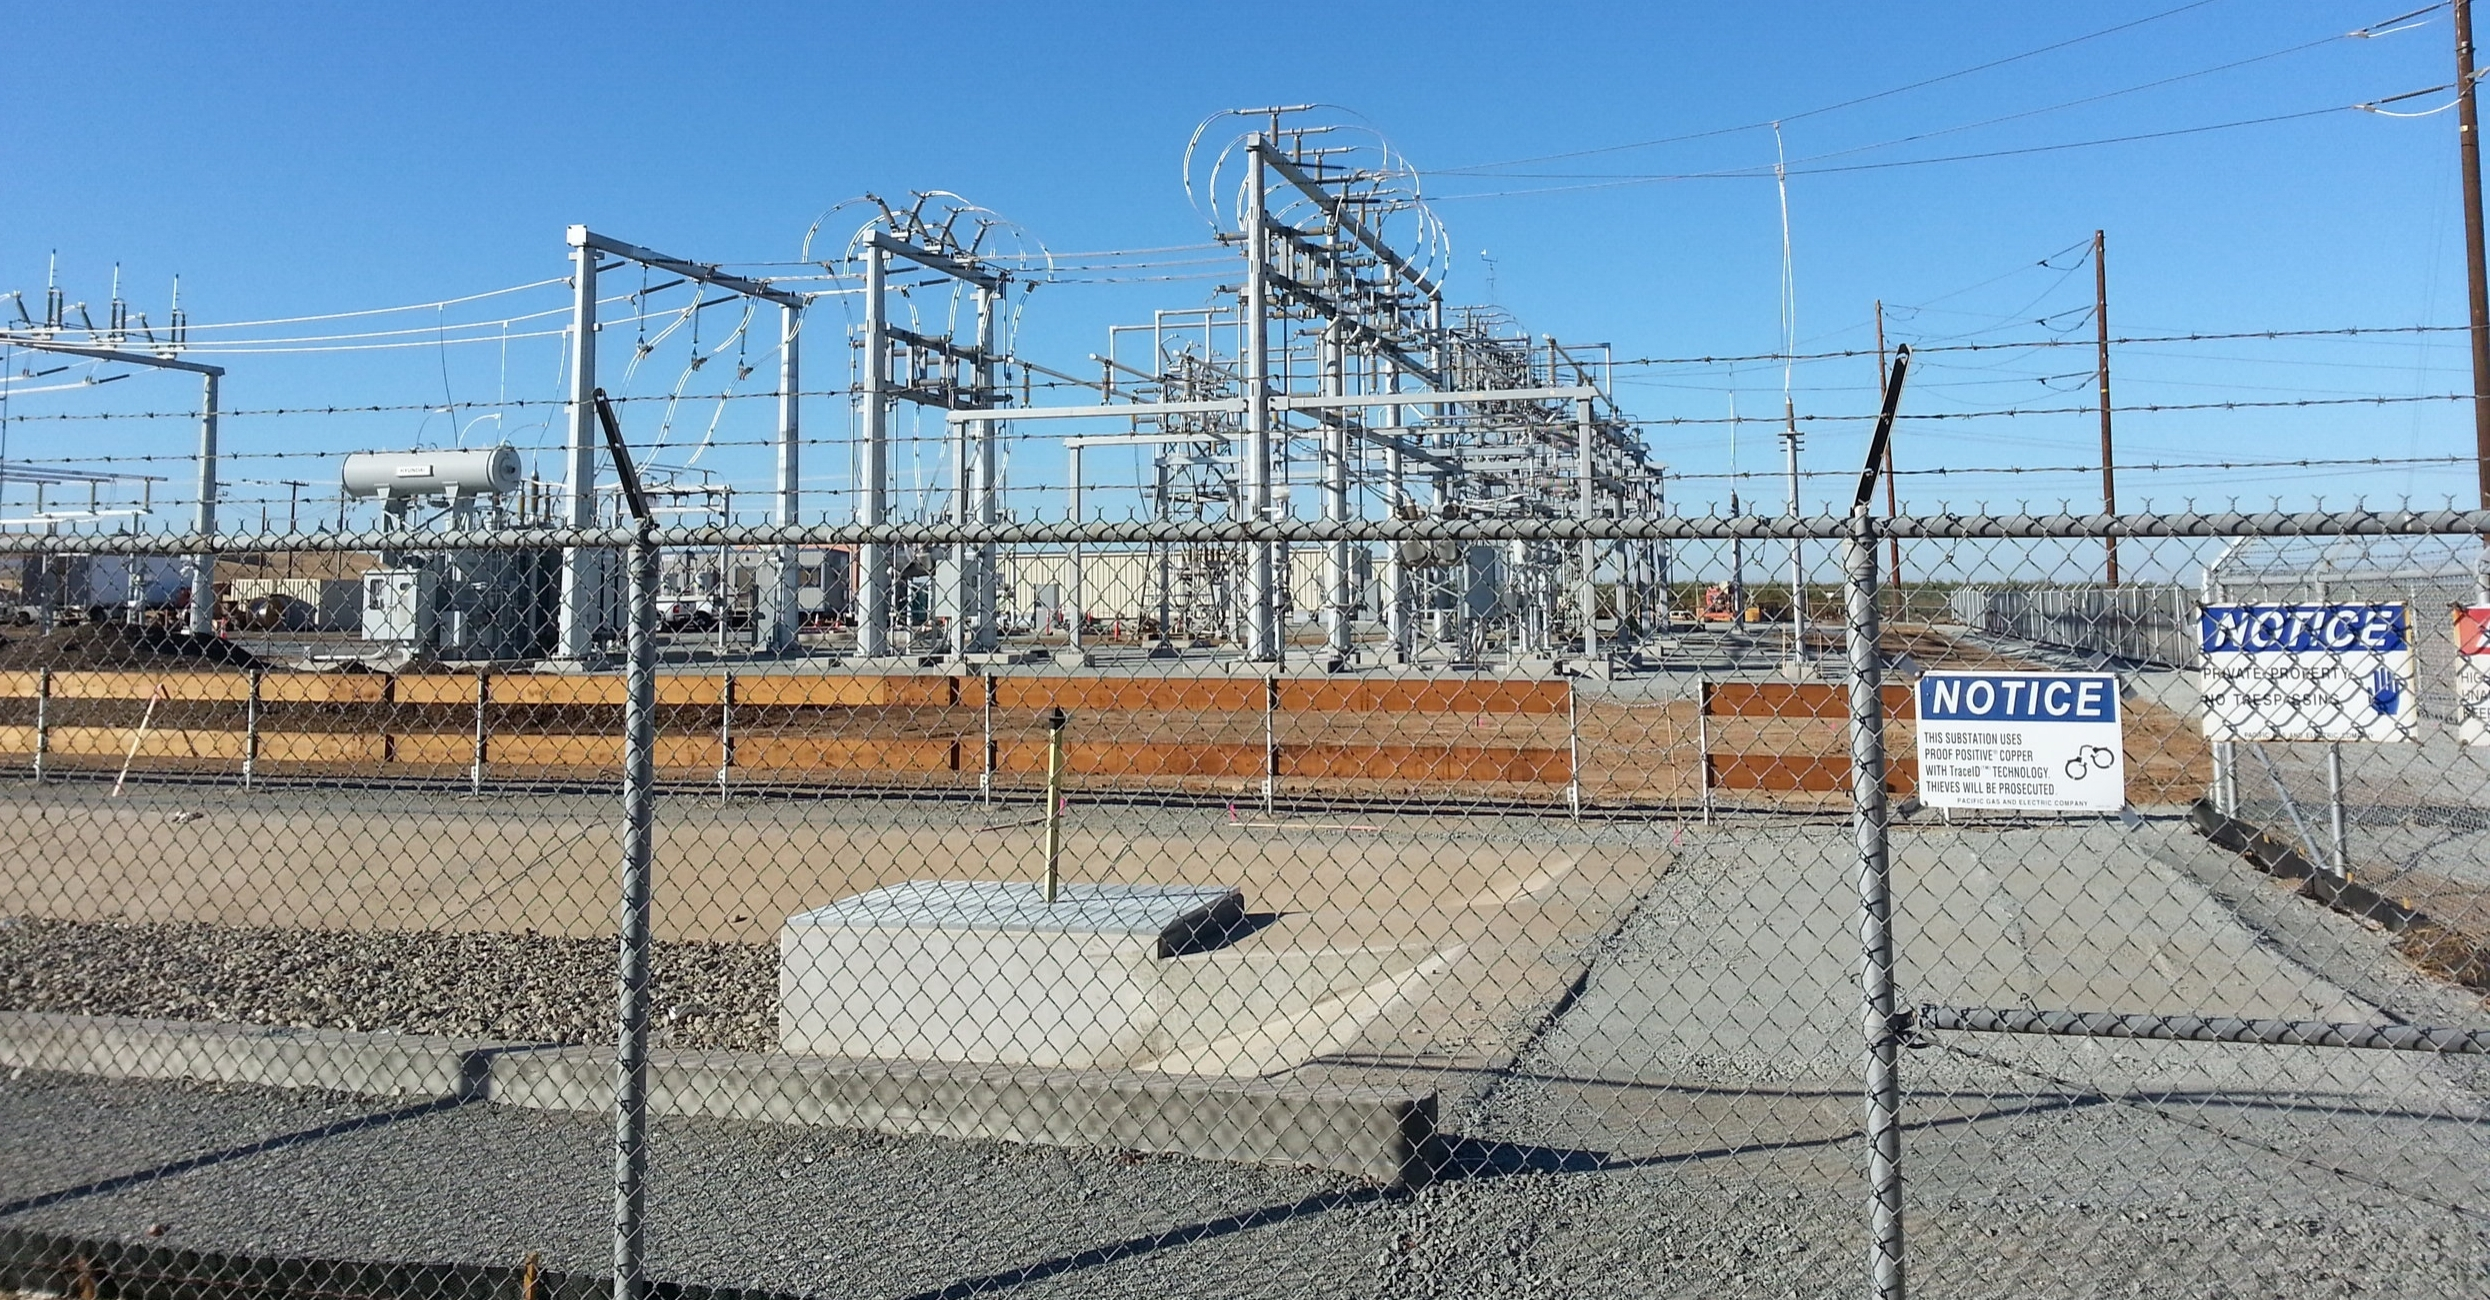 SALADO SUBSTATION   In November 2013, Praxis worked with Clark Brothers and Dashiell to locate proposed improvements and upgrades to PG&E's Salado Substation modernization project. This expansion project included the installation of new equipment and the development of previously unused portions of the substation facility in Patterson, CA.  Control Survey  |  Construction Staking